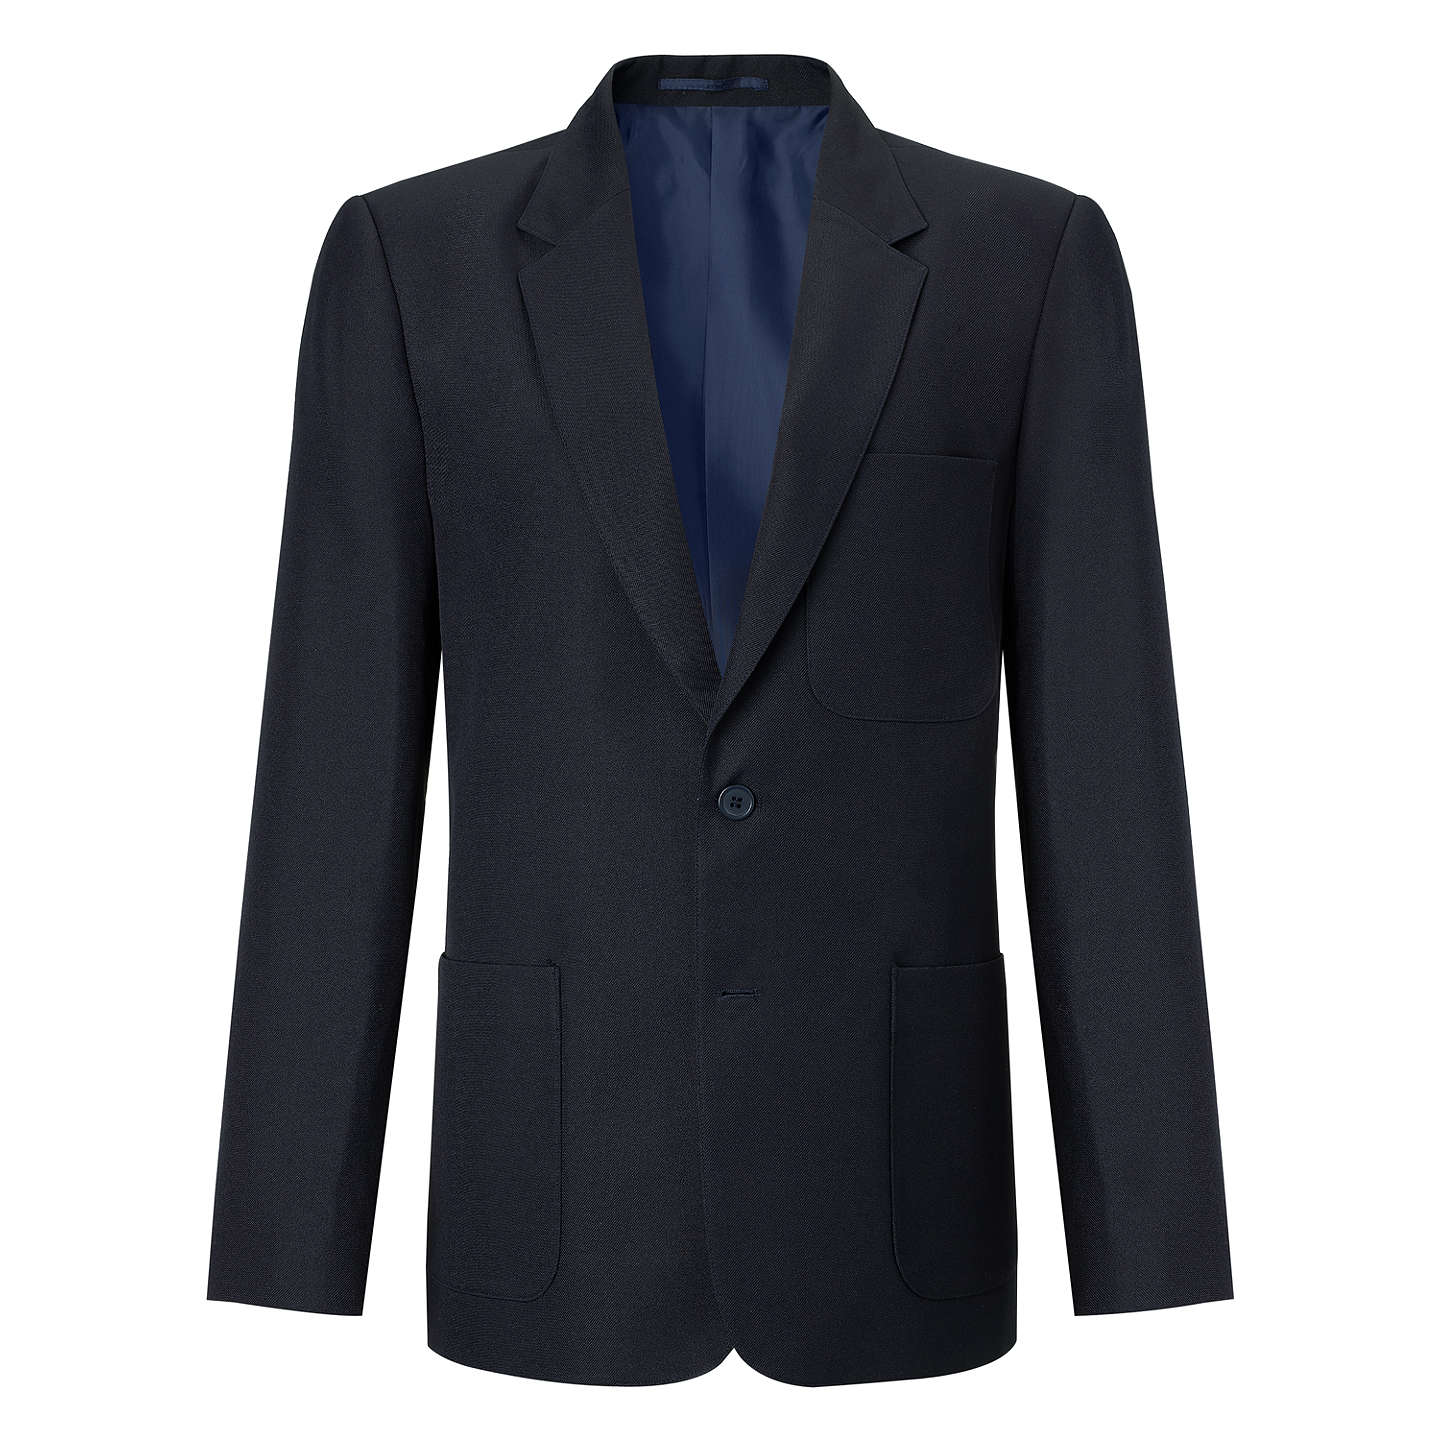 "BuyJohn Lewis Boys' School Eco Blazer, Navy, Chest 22"" / 3-4 years Online at johnlewis.com"